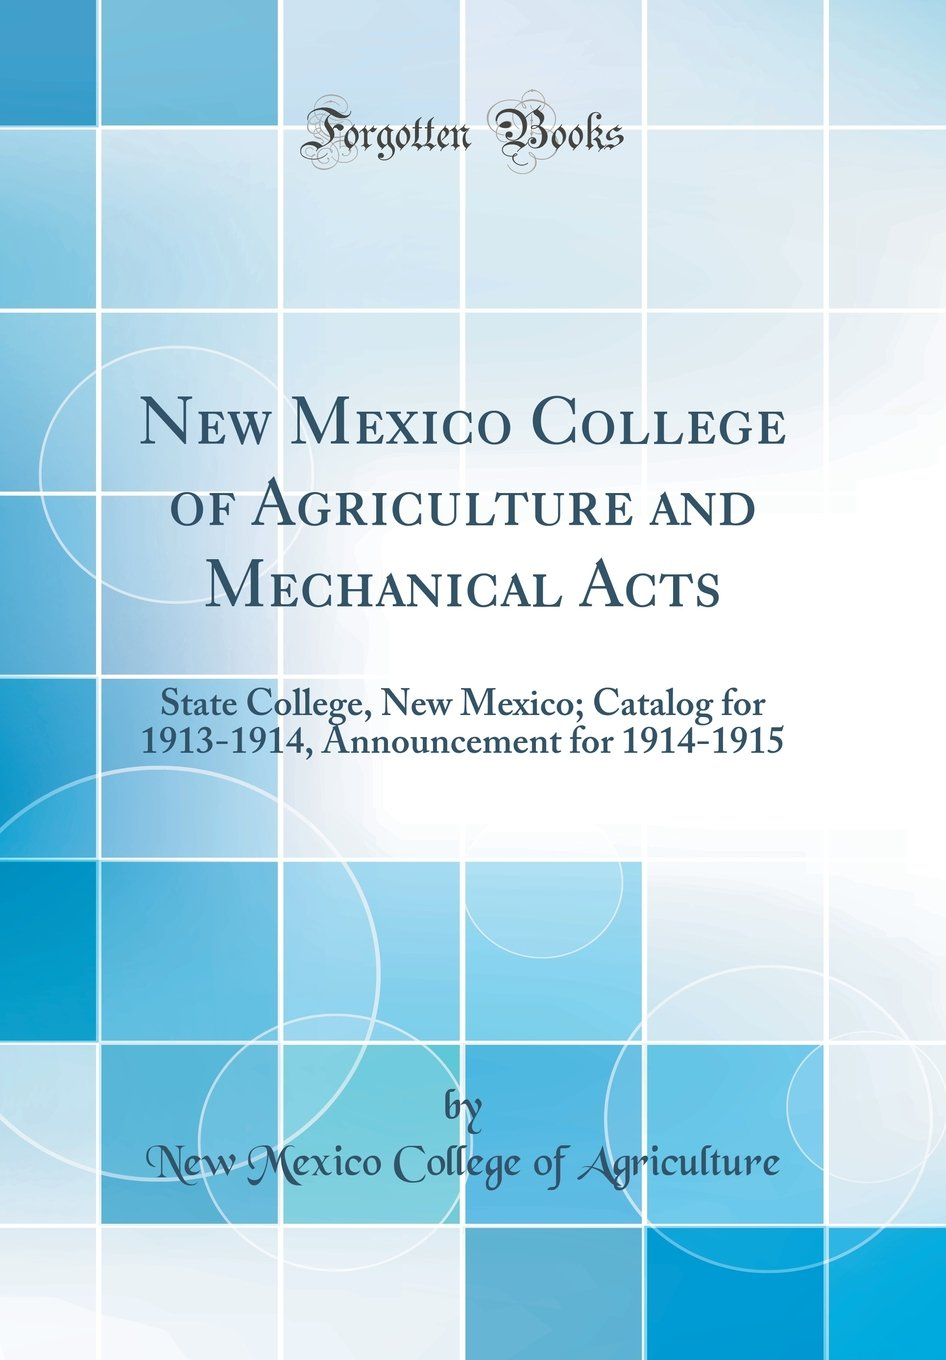 New Mexico College of Agriculture and Mechanical Acts: State College, New Mexico; Catalog for 1913-1914, Announcement for 1914-1915 (Classic Reprint) pdf epub